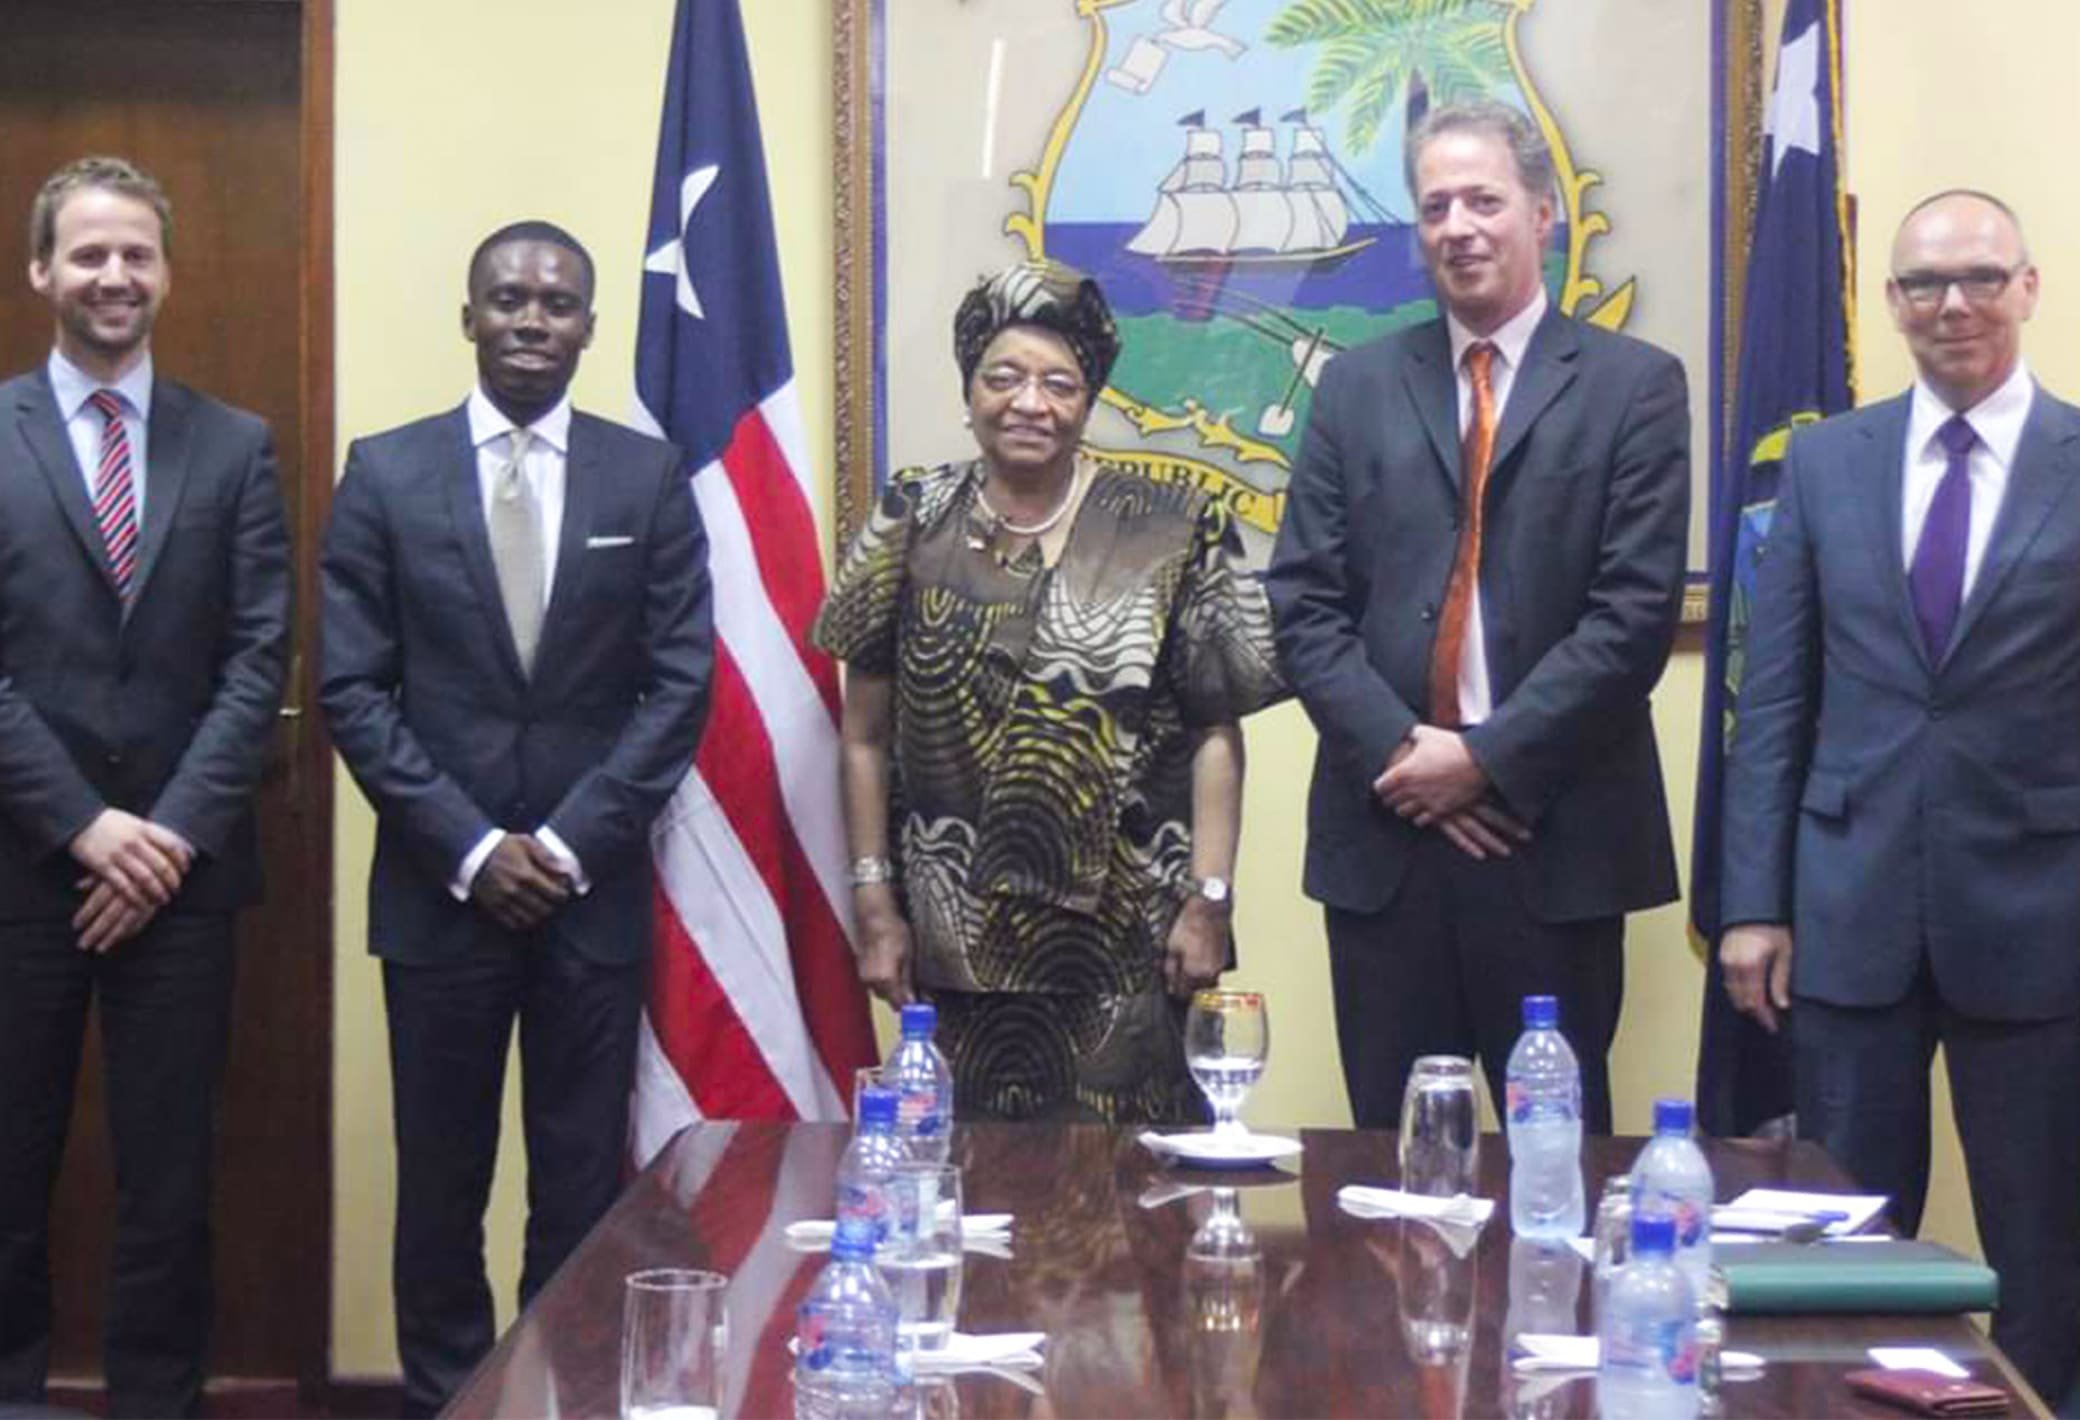 Seth meeting the former president of Liberia, H.E. Sirleaf Johnson in 2012, as representative of Philips in a Dutch business delegation